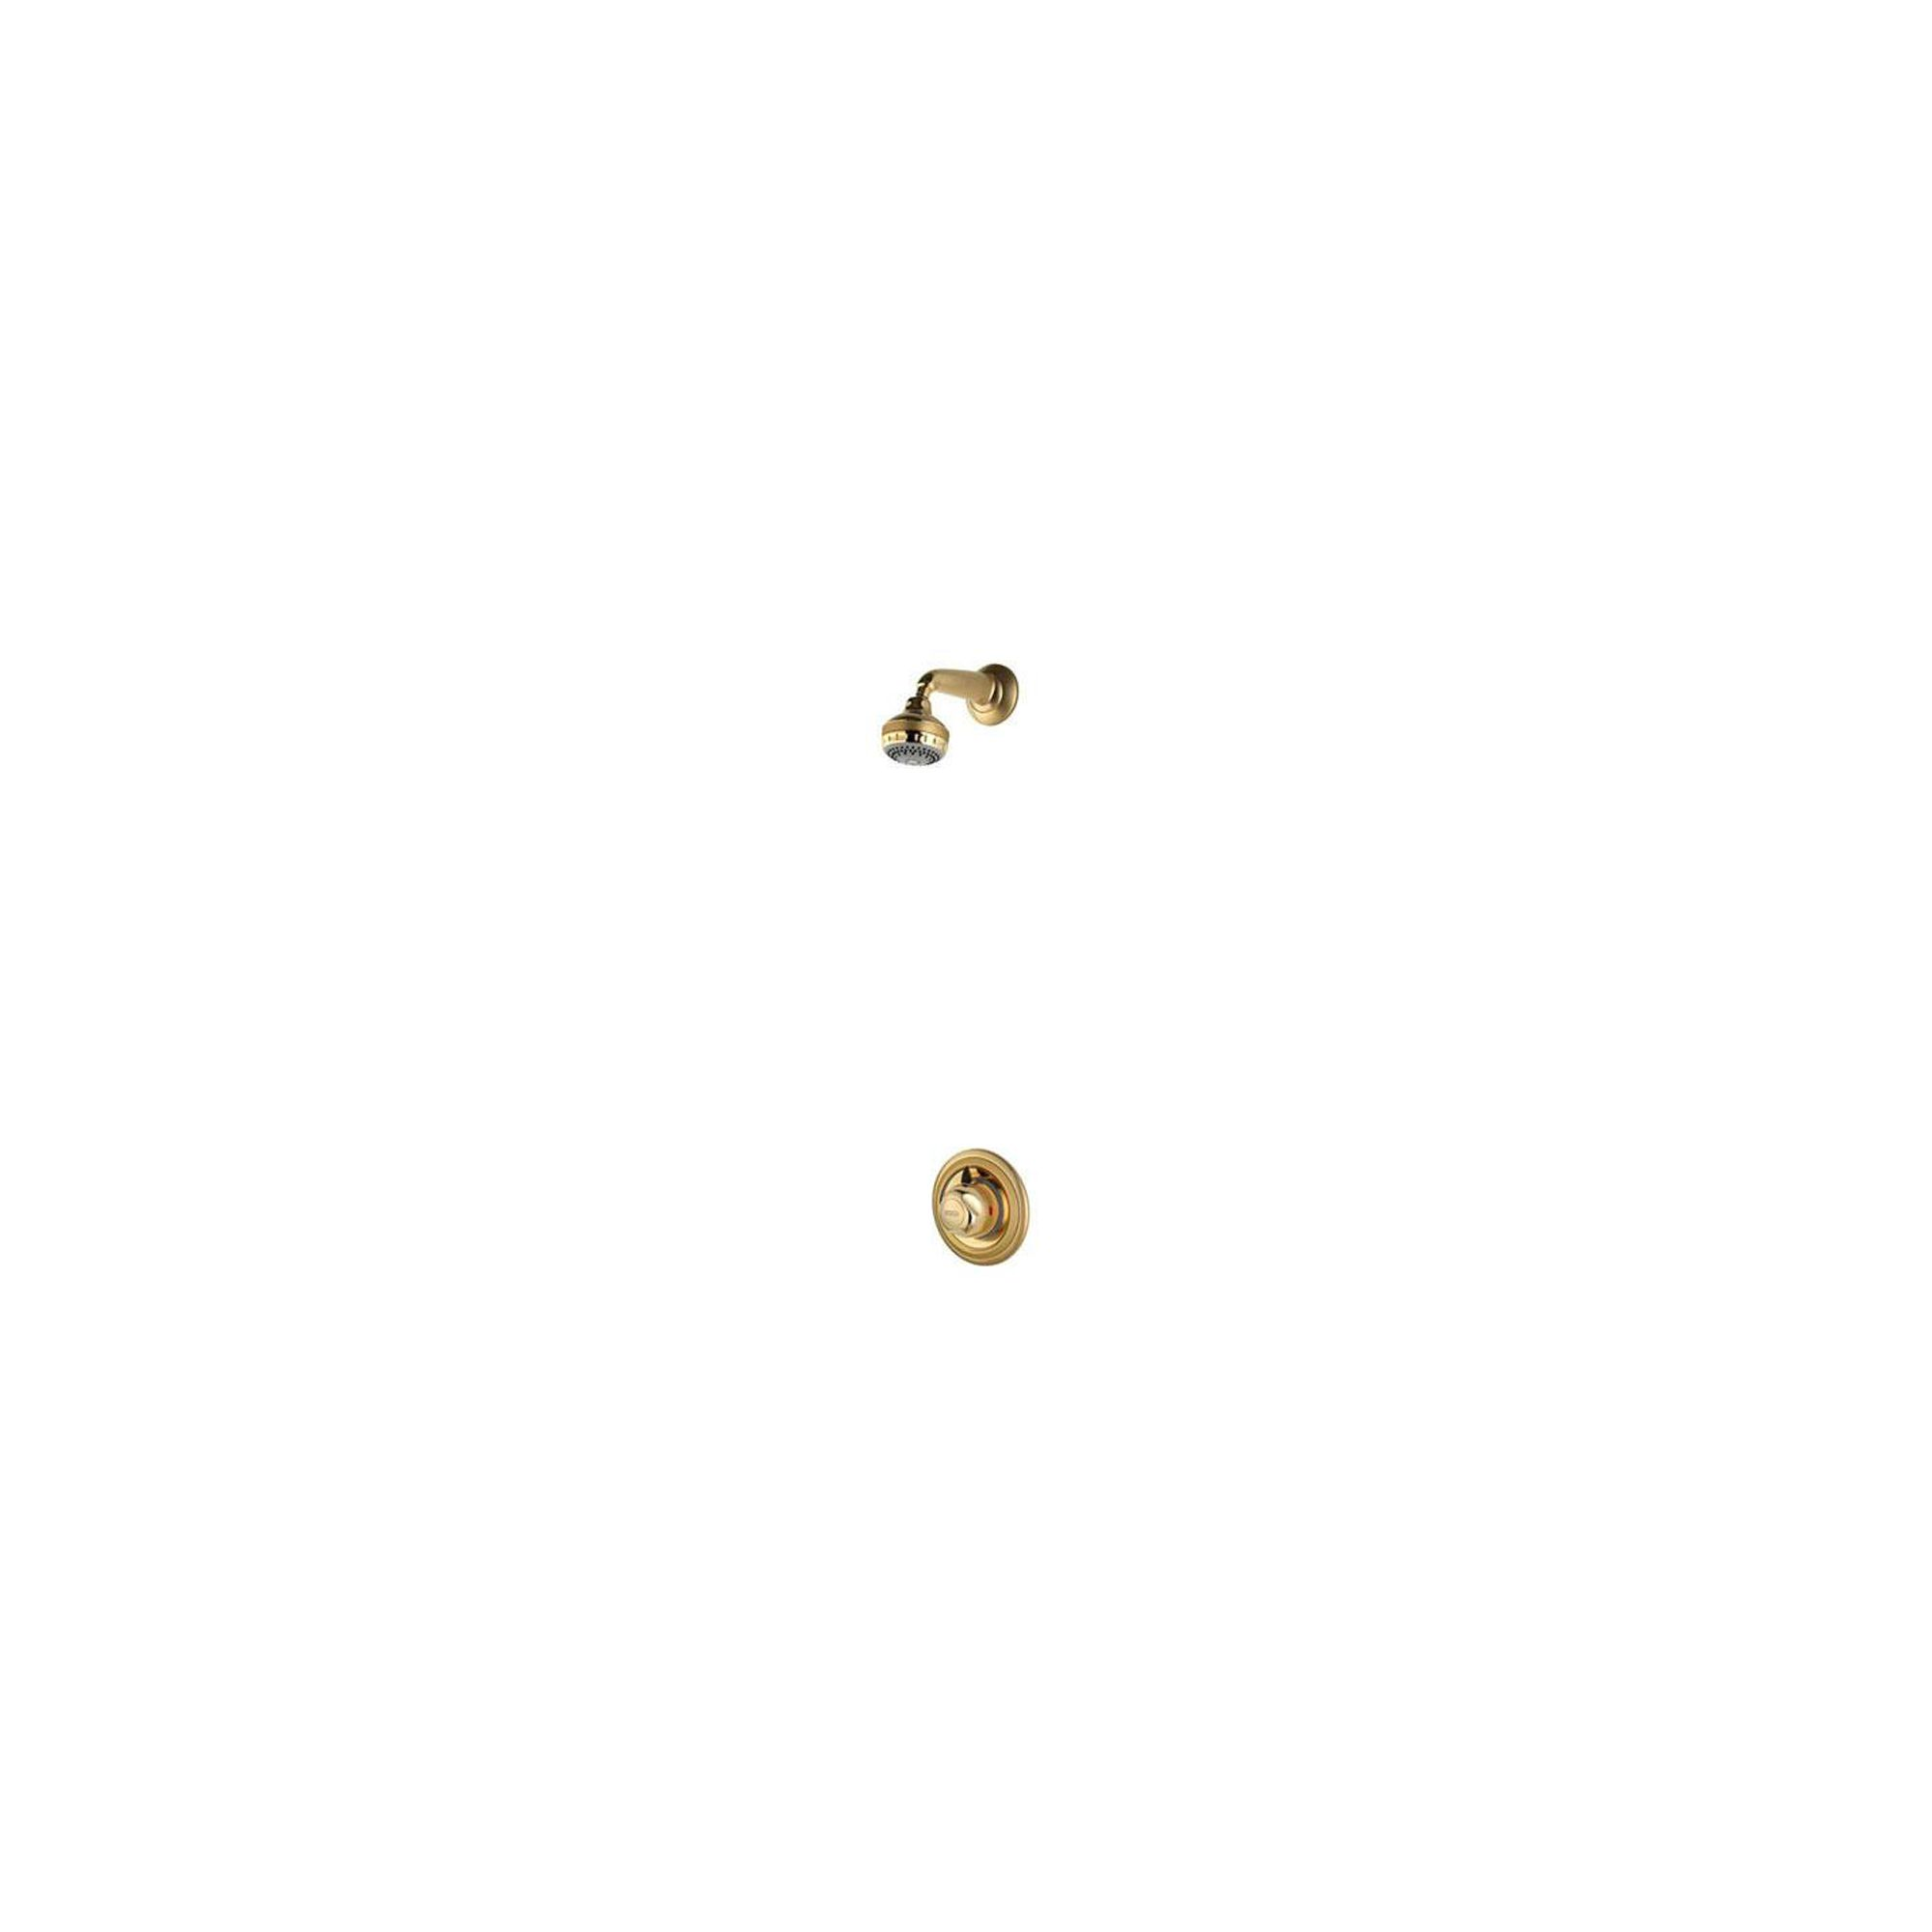 Aqualisa Aquavalve 609 Concealed Shower Valve with Fixed Shower Head Gold at Tesco Direct